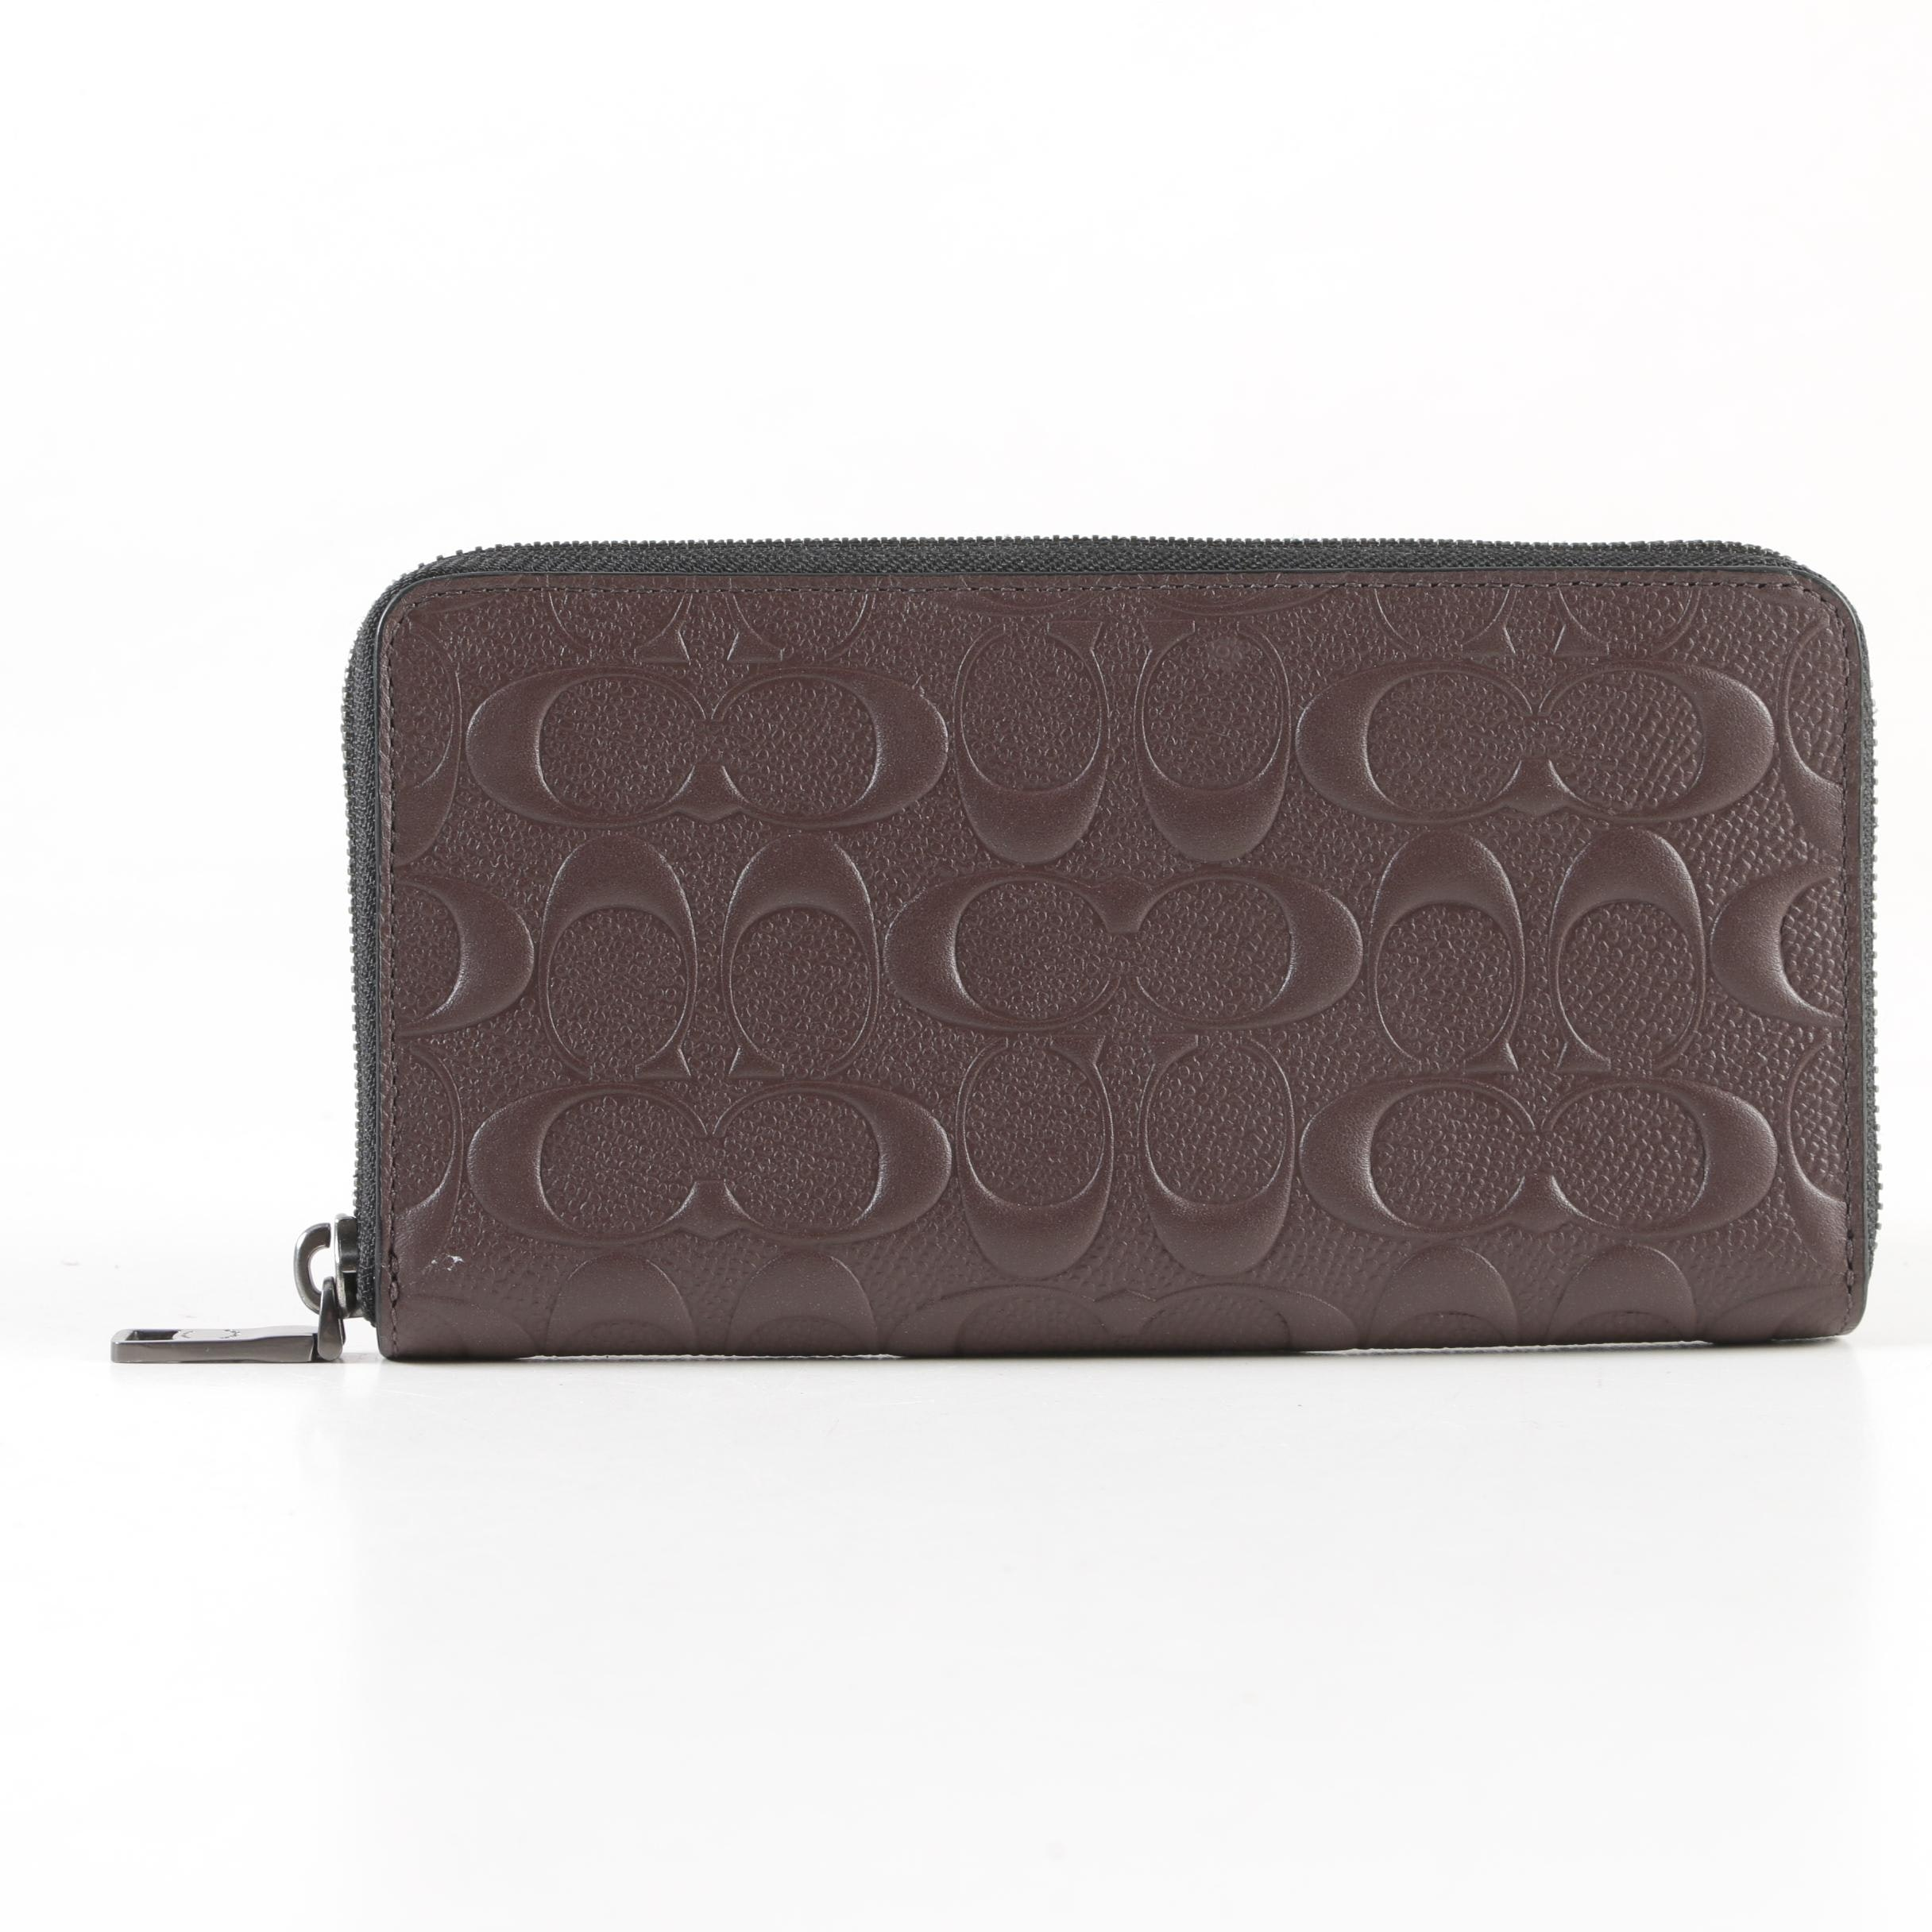 Coach Signature Embossed Brown Leather Zip Wallet